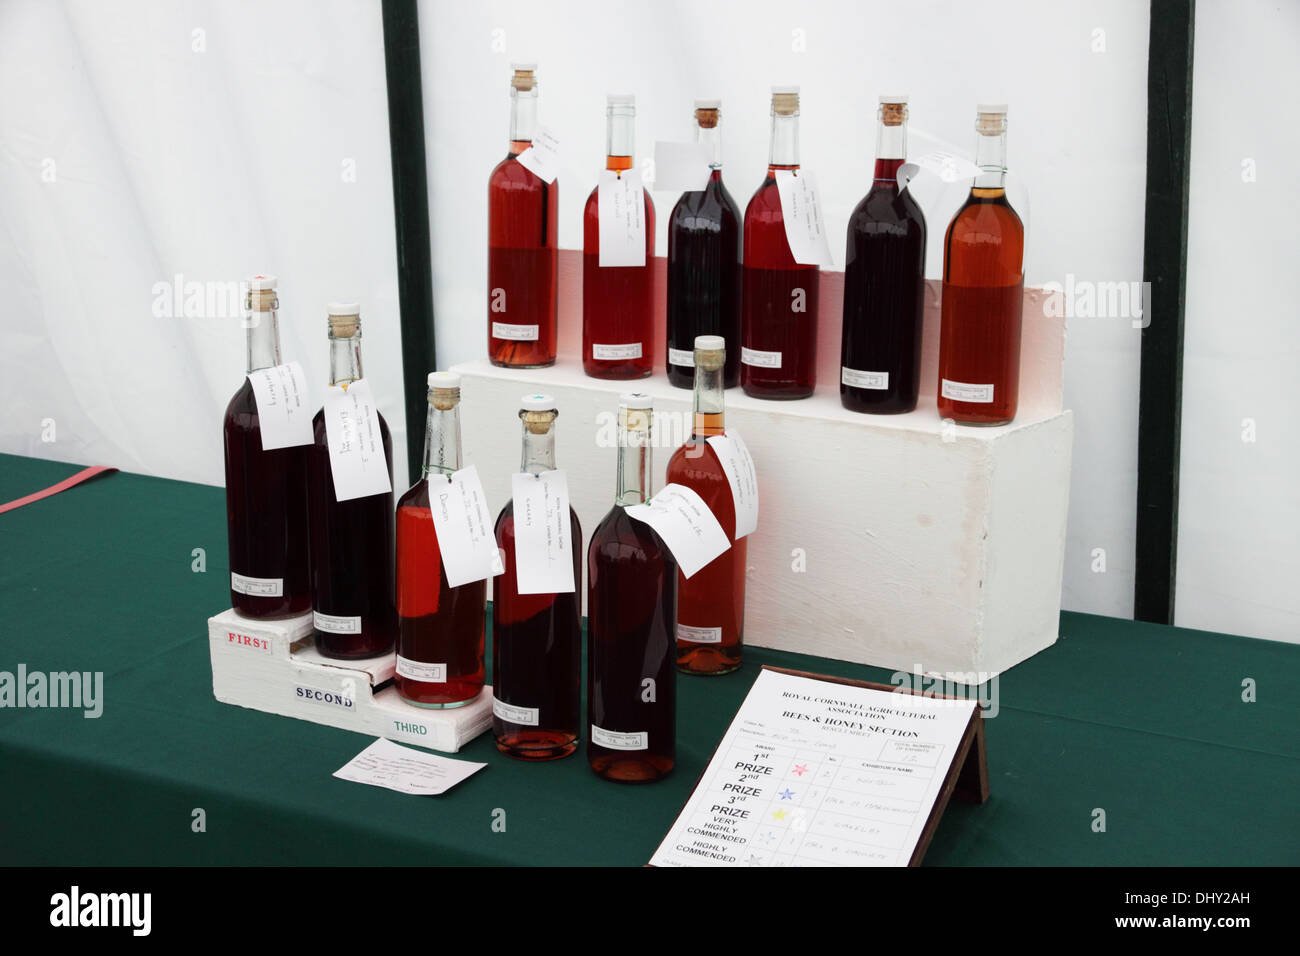 Bottles of homemade wine with prize winning labels attached.